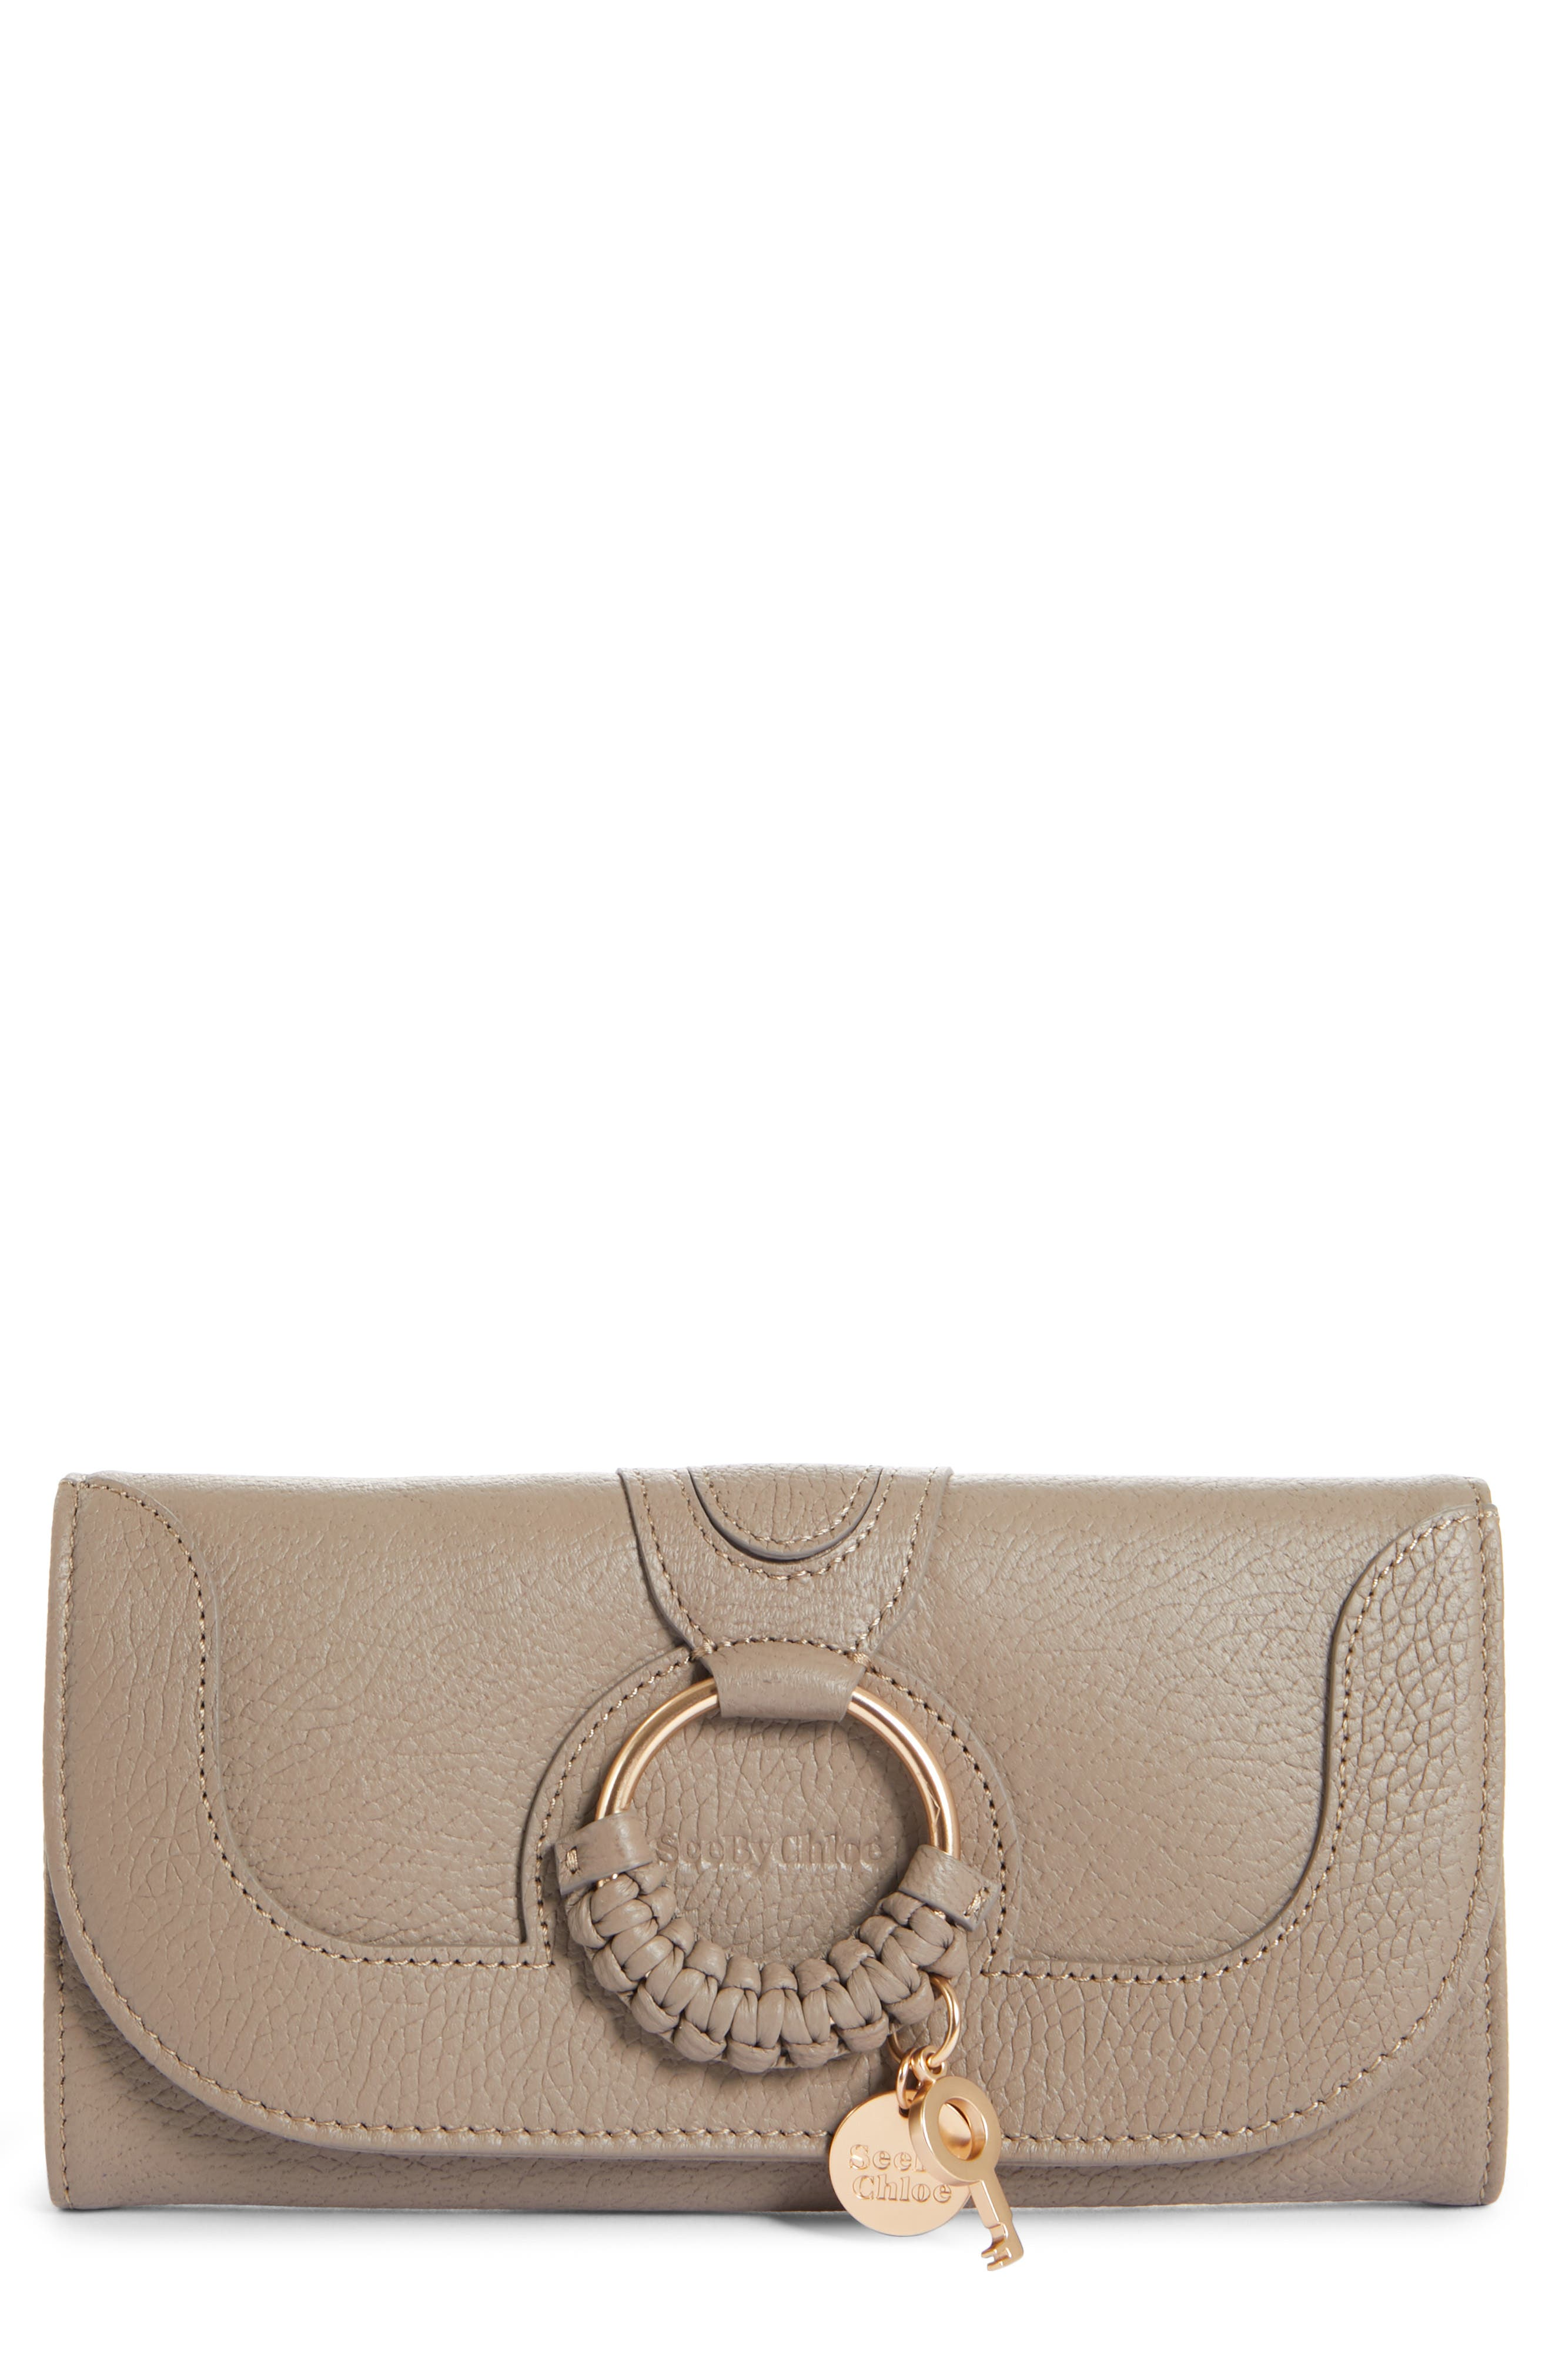 9219c98f03 See by Chloé Handbags for Women